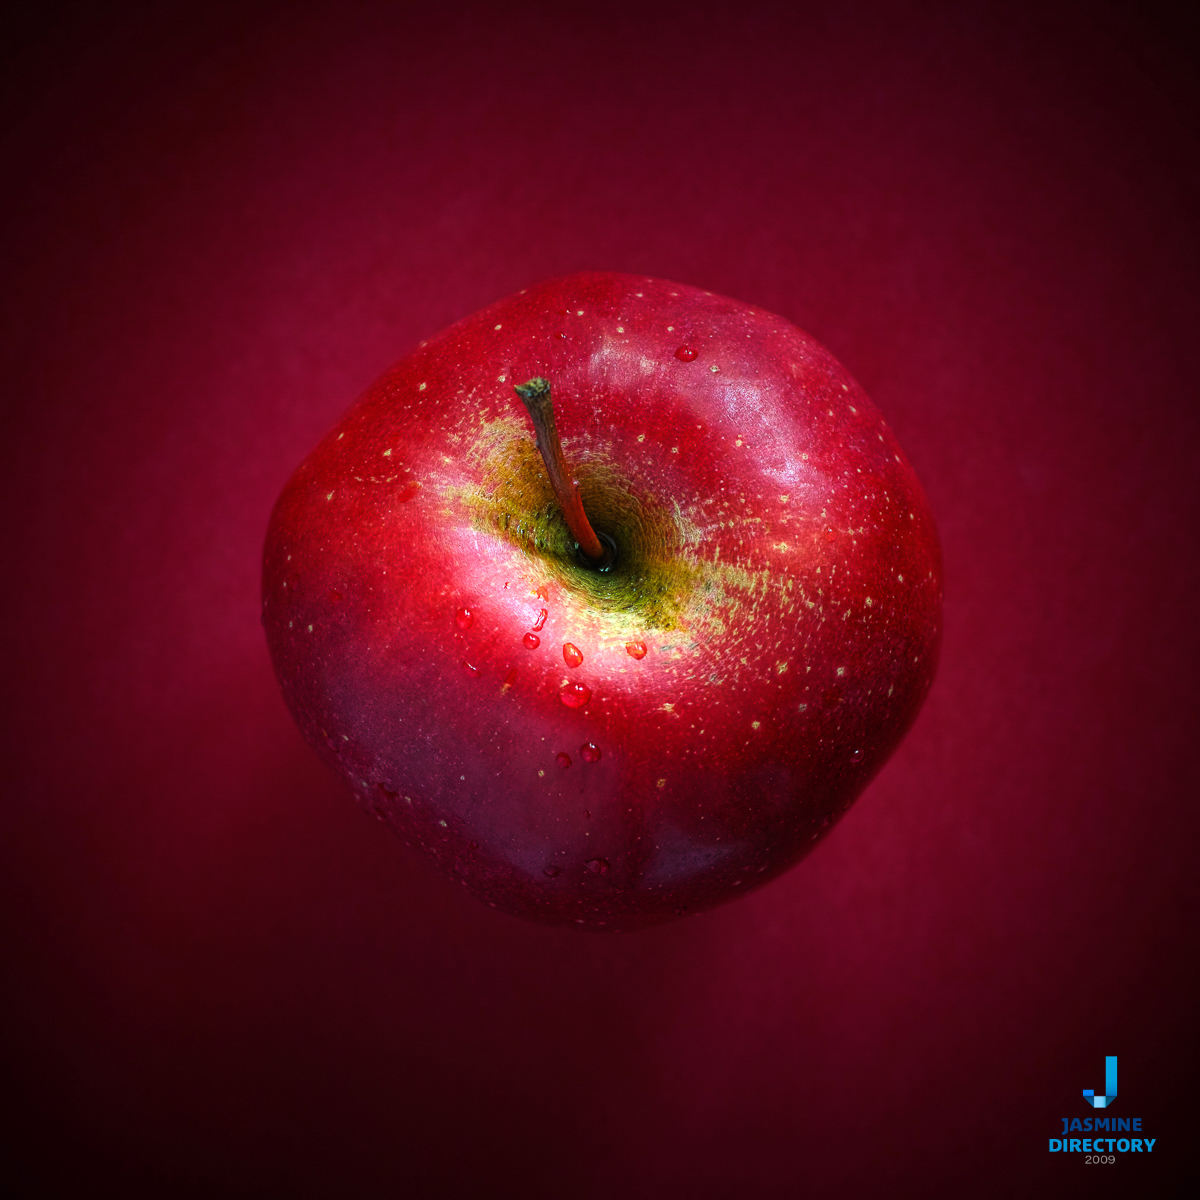 Red apple on red background